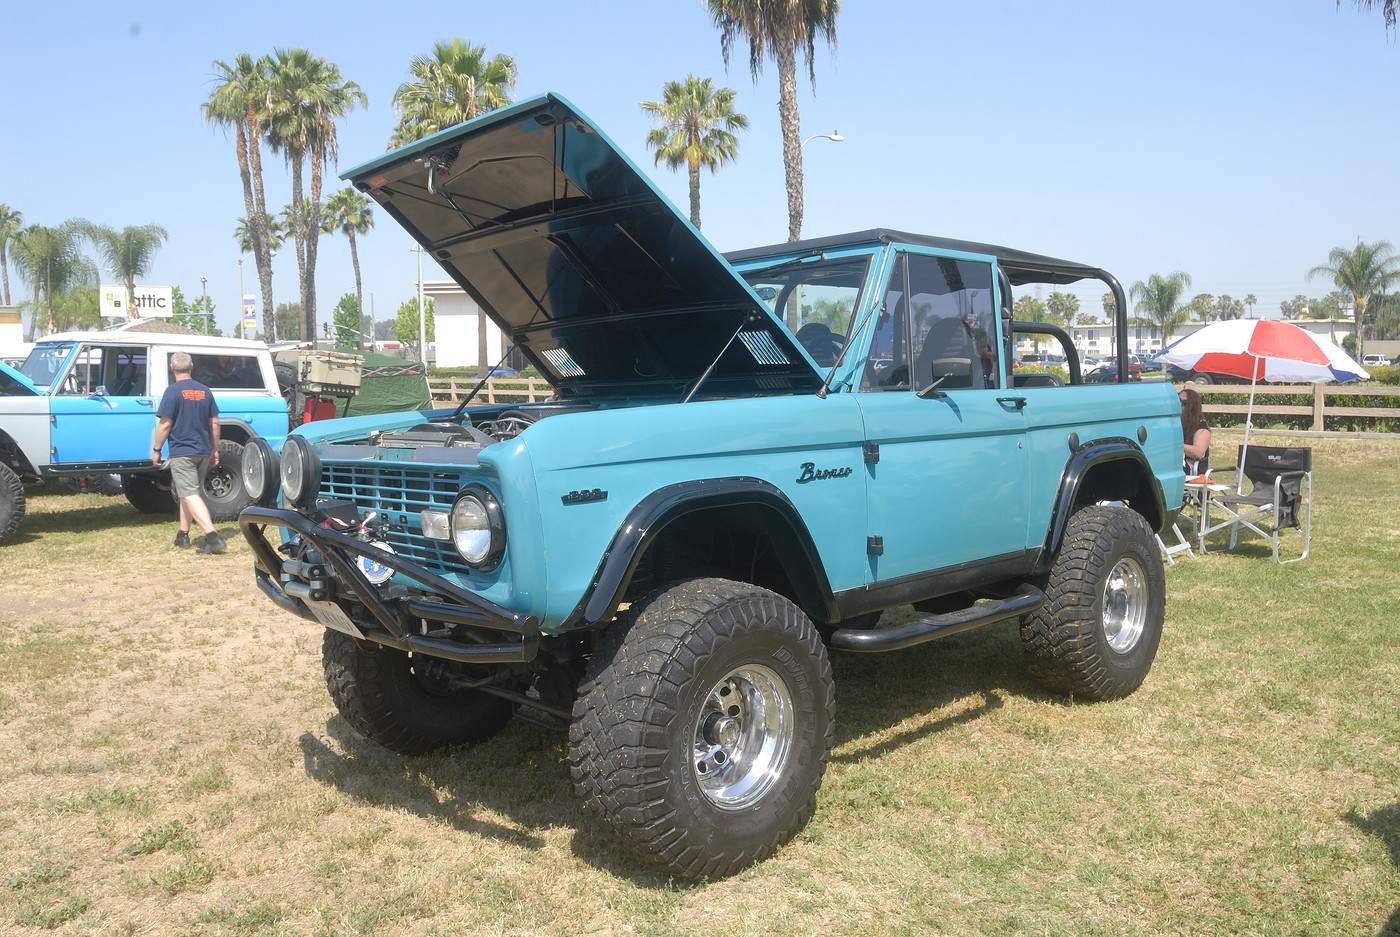 1969 Ford Bronco owned by Bian Rosen DSC 4880